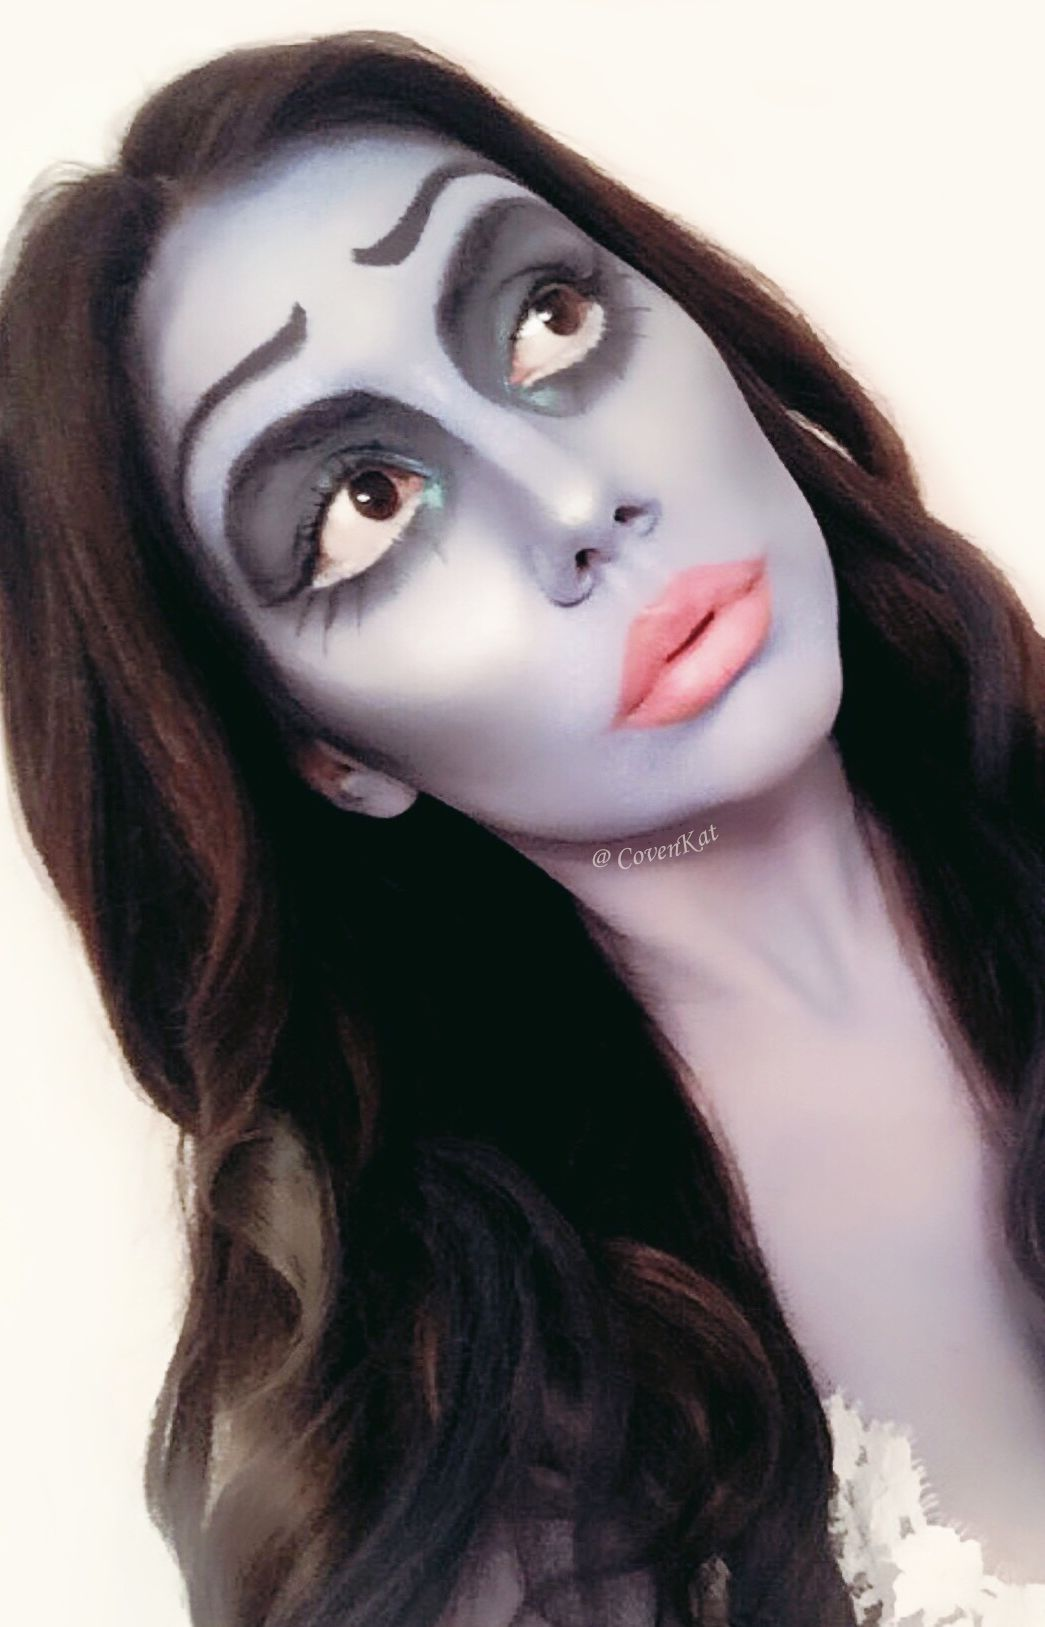 Halloween Look Corpse Bride I hope I can get more characters done